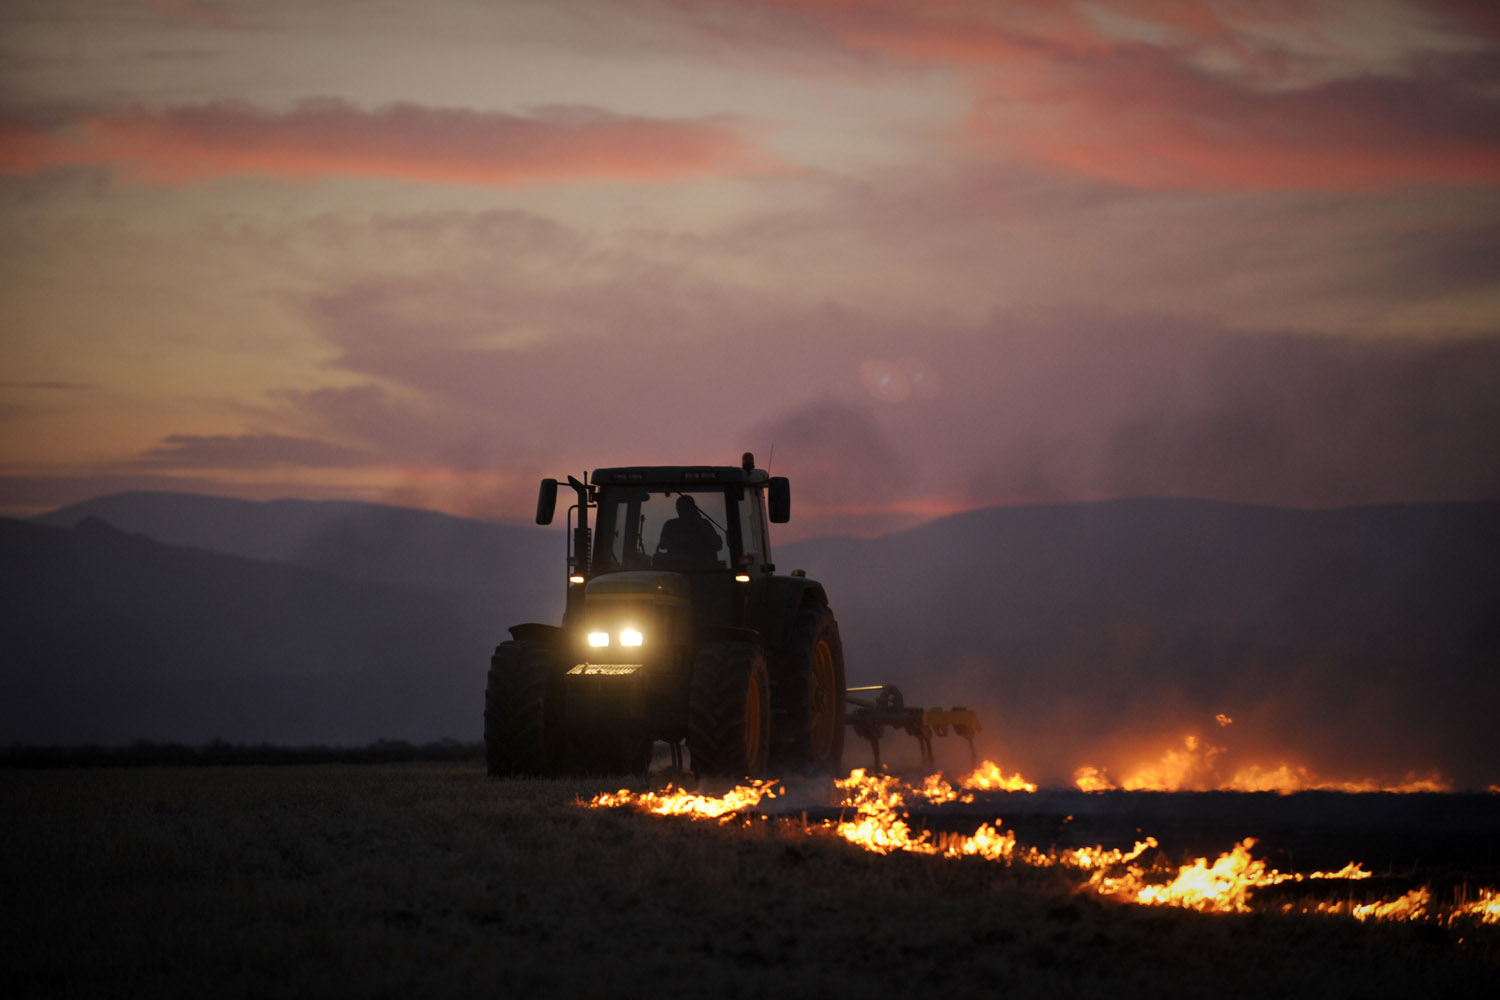 Aug. 11, 2012. A neighbor works in El cubillo de Uceda during a forest fire near Guadalajara, Mexico.